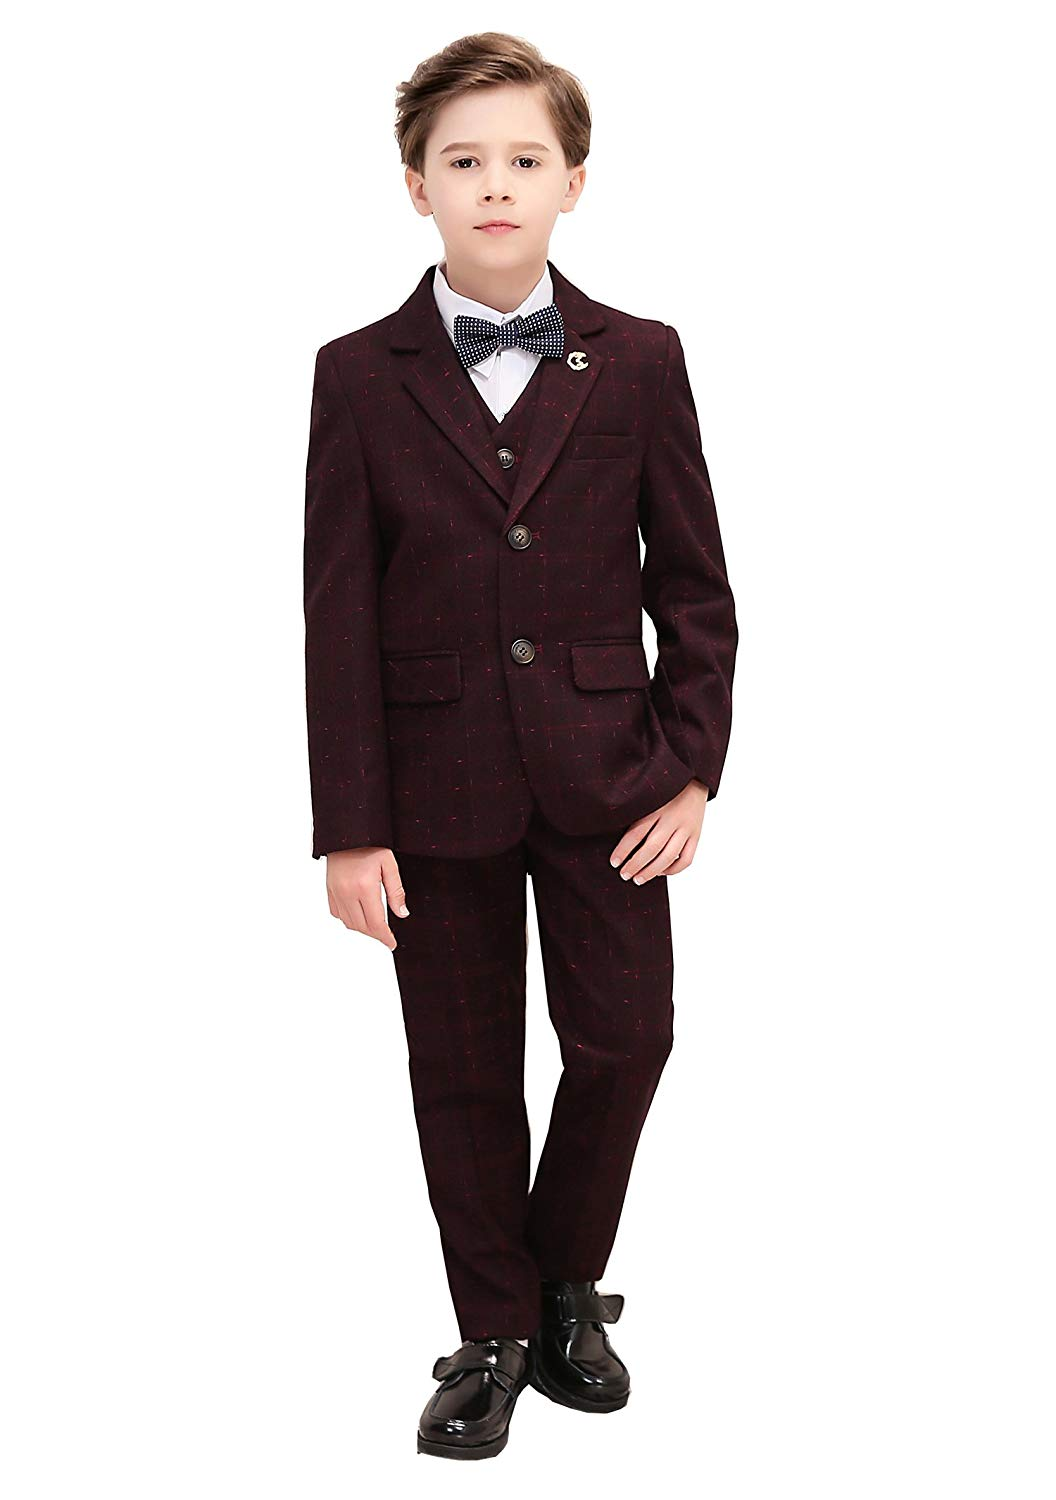 e83f72319940 Cheap Boys Size 8 Suits